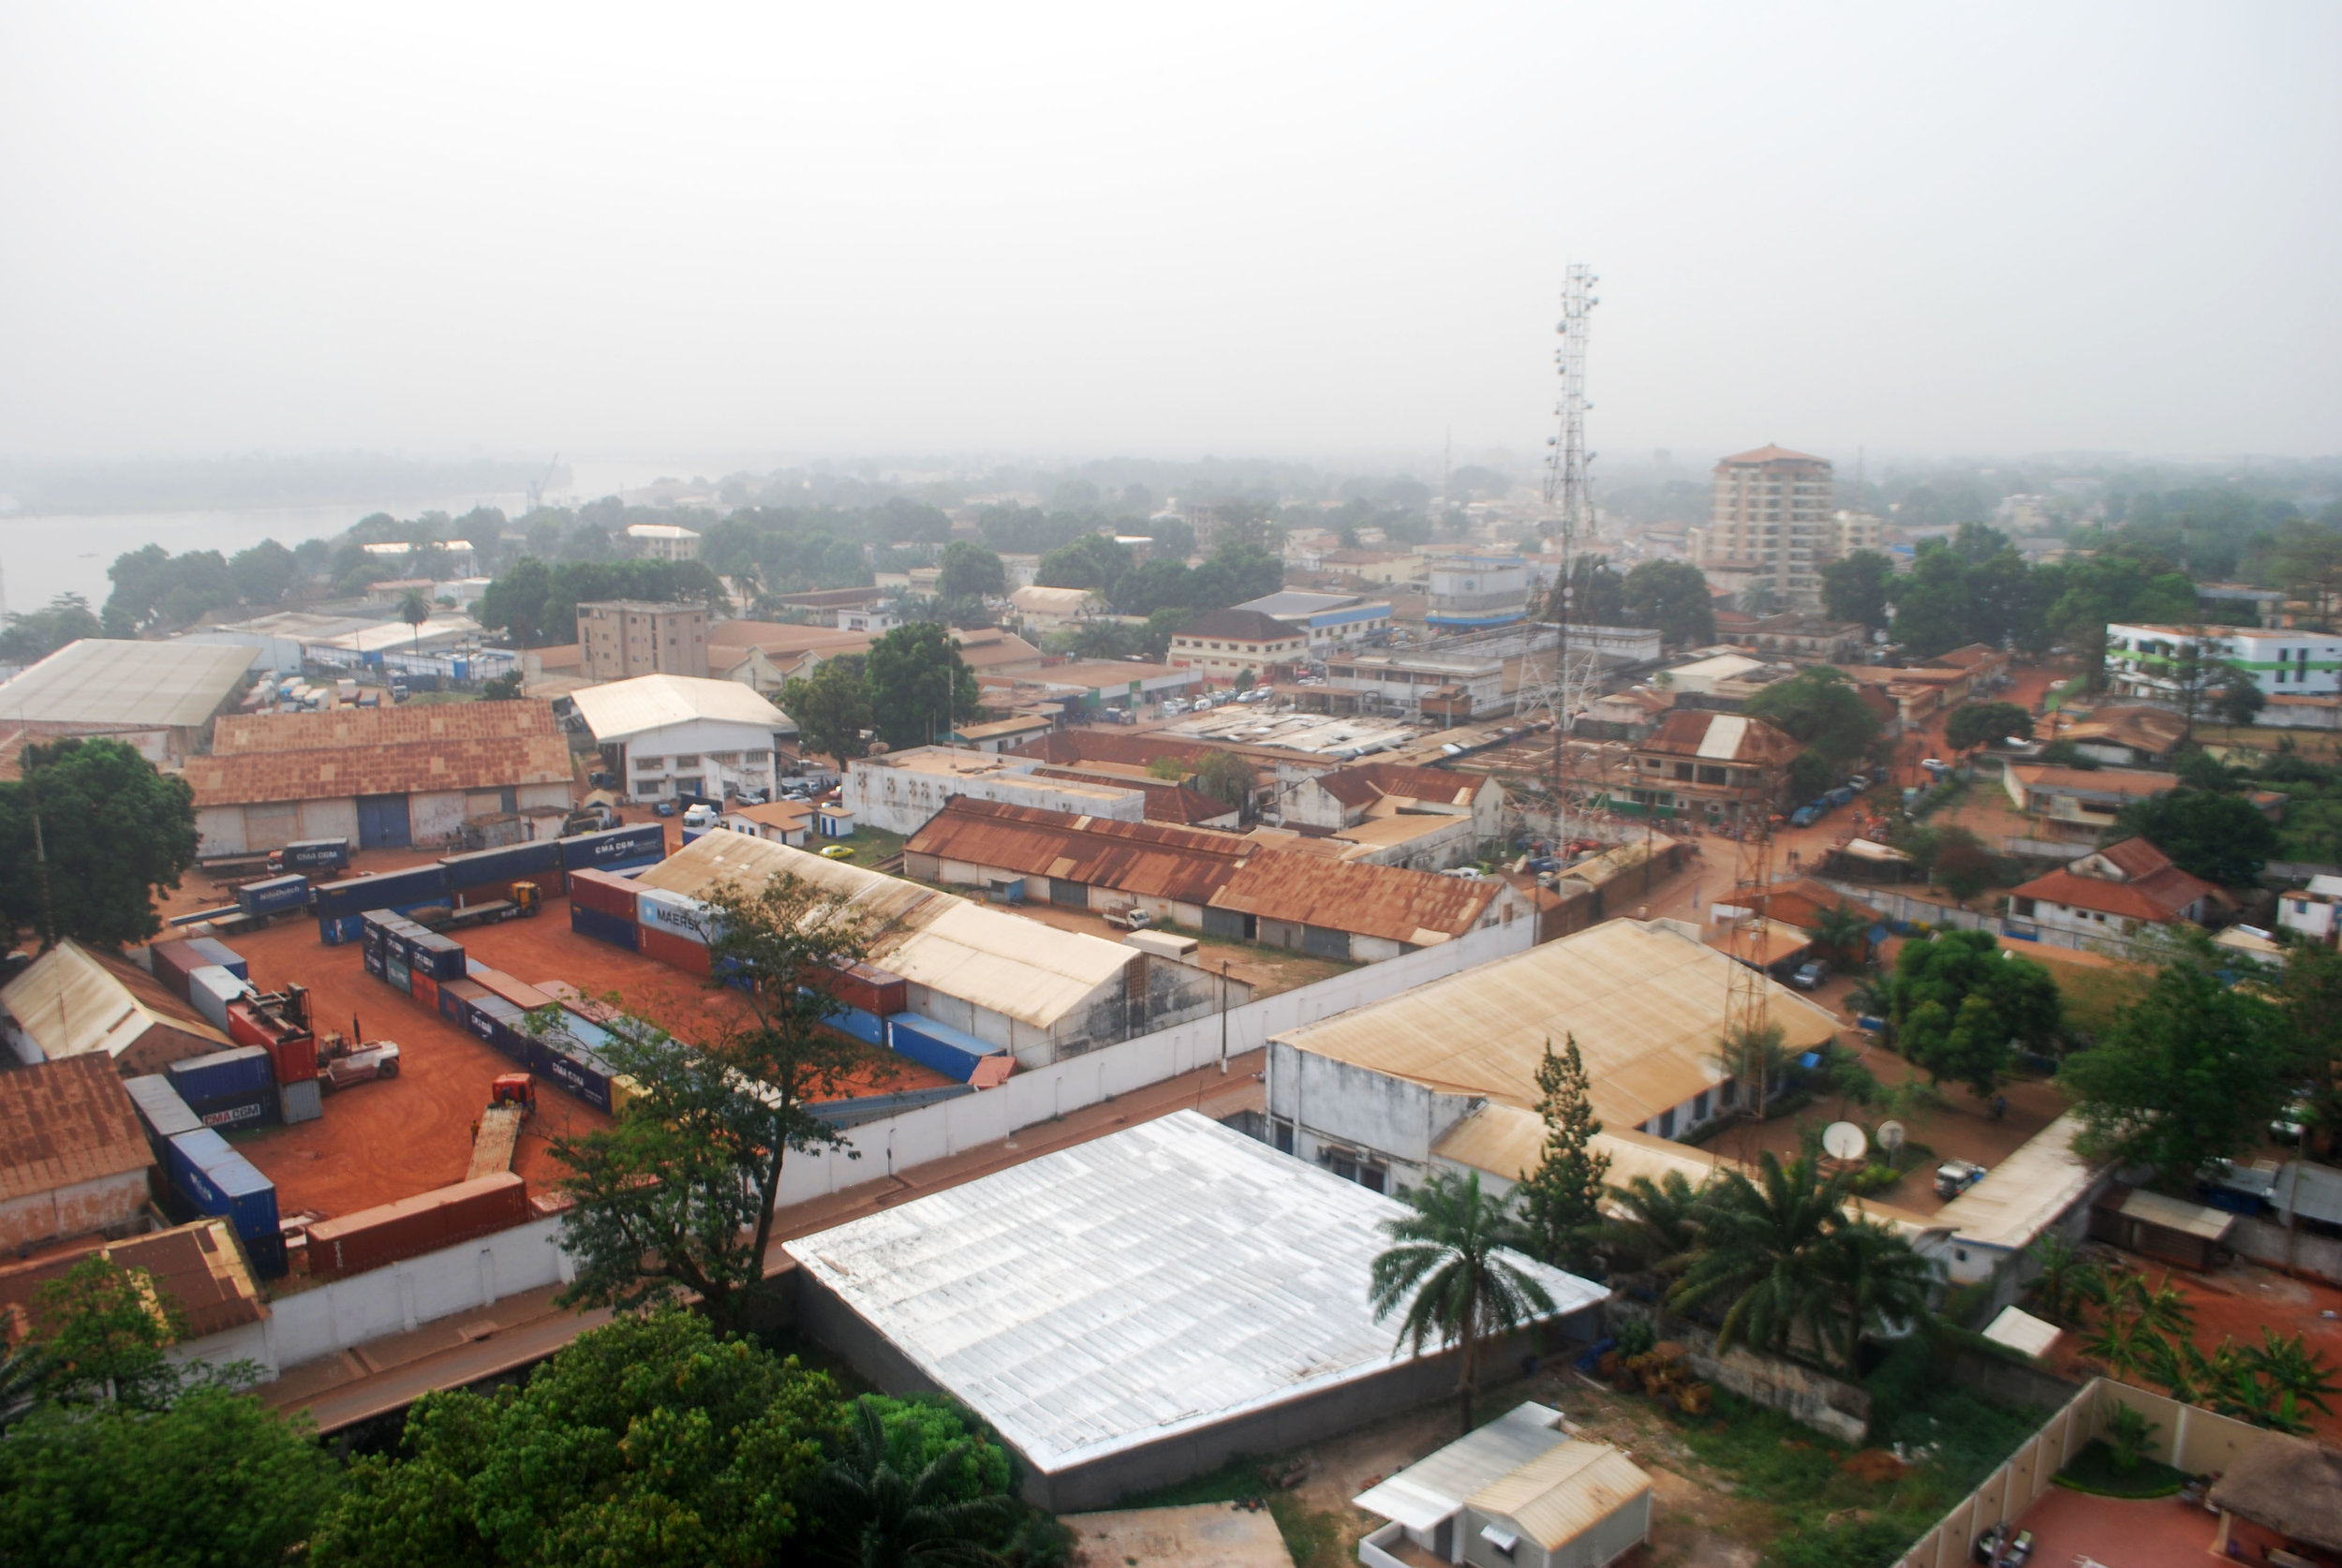 The view over Bangui from my host's balcony in the Skaiky Building. I spotted a peregrine falcon perched on the cell tower to the center-right.